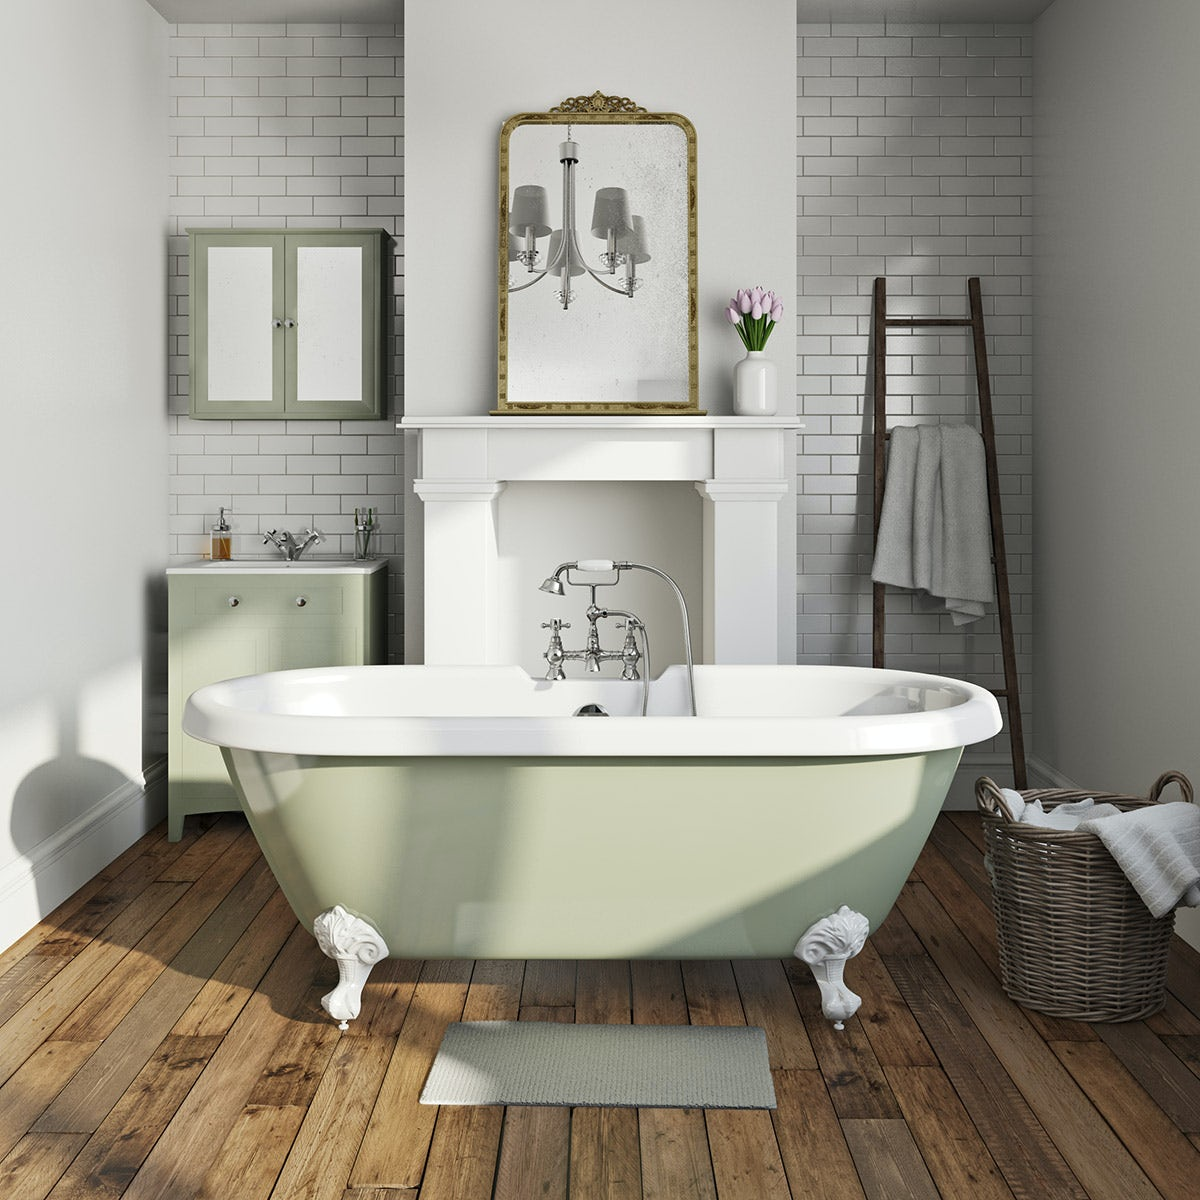 Sage coloured bath with tap and waste